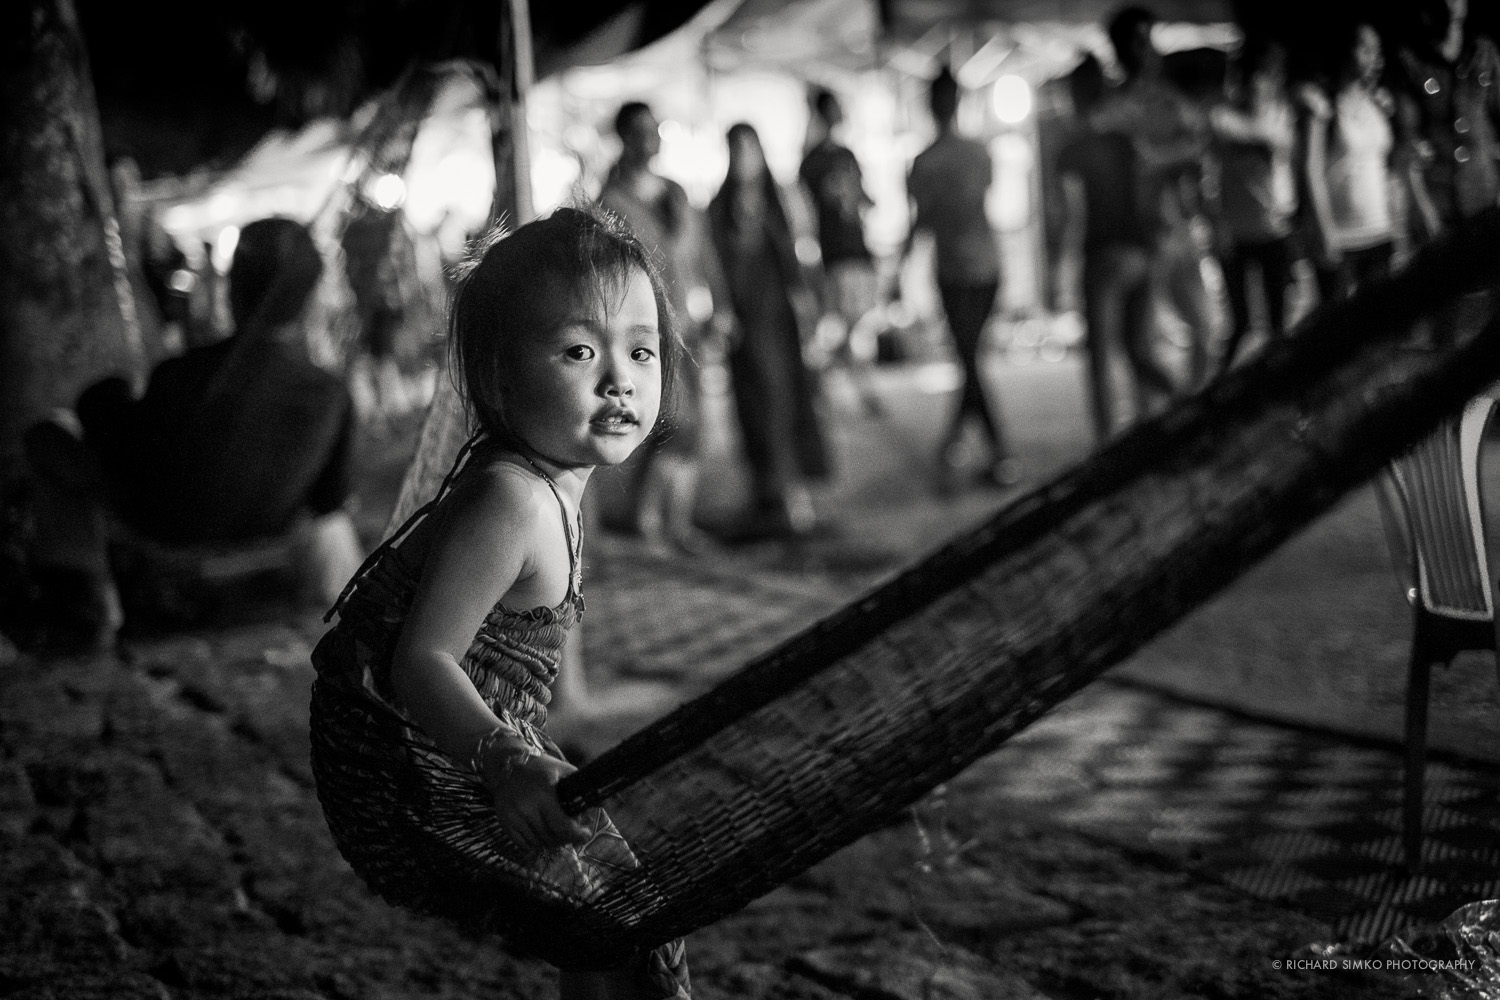 Hue, the ancient capital of Vietnam has a beautiful riverside with a night market that offers tons of photographic opportunities. I came across this little girl sitting on hammock. She was initially looking ahead and I wanted to capture a detail of her hand holding onto hammock. I got very close to her and took about 4-5 shots when she noticed me and turned her head towards me. In that moment I quickly recomposed the shot and took this photograph.